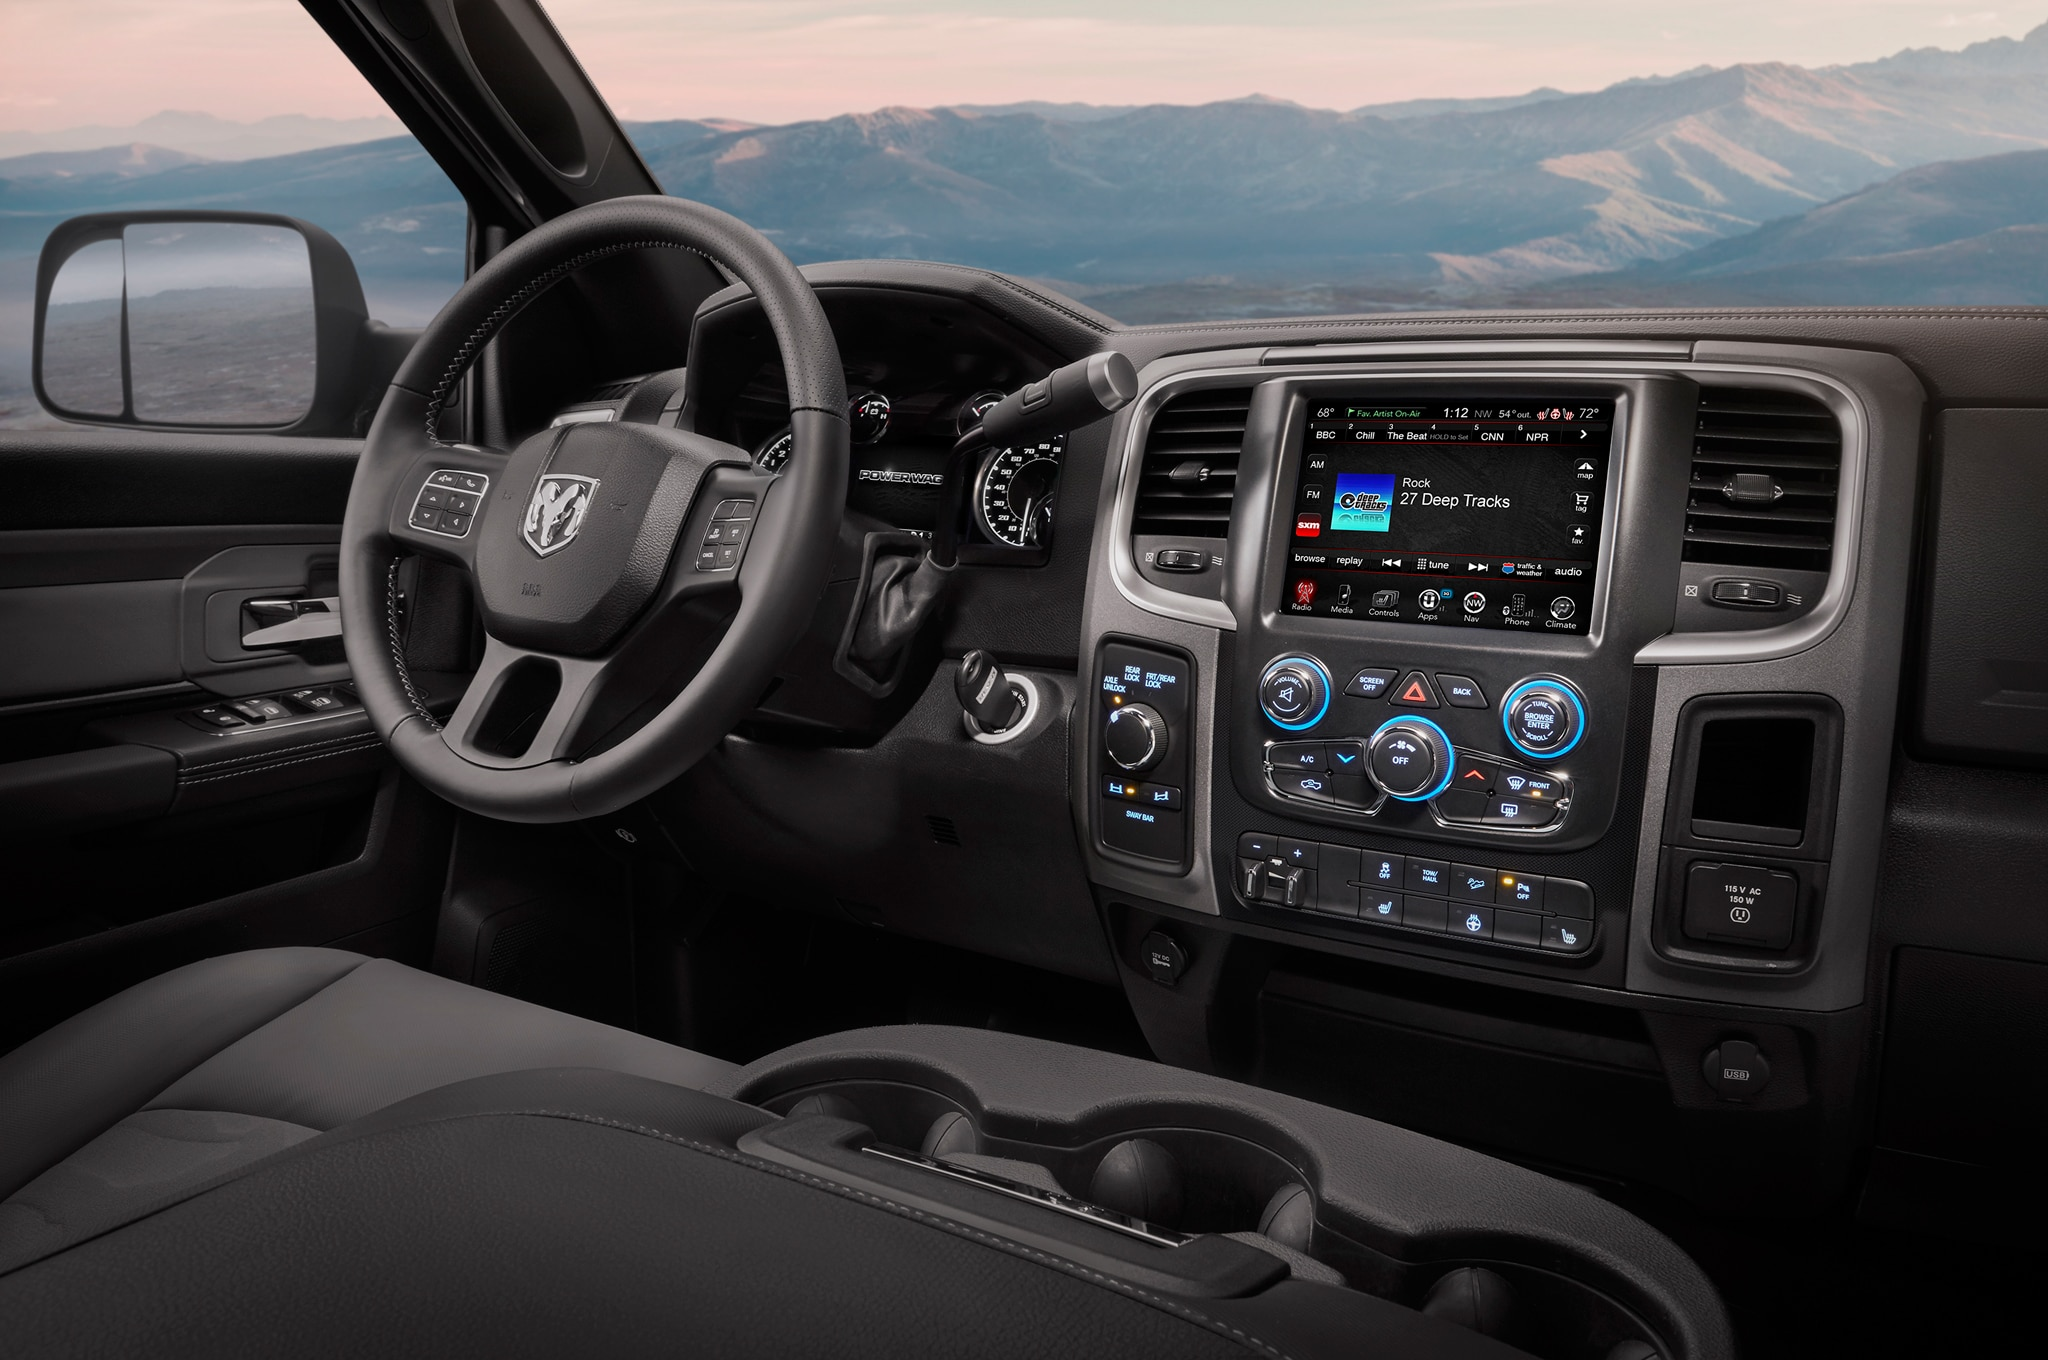 2017 Ram 2500 Wagon Interior View 02 15 Agosto 2016 Wpengine